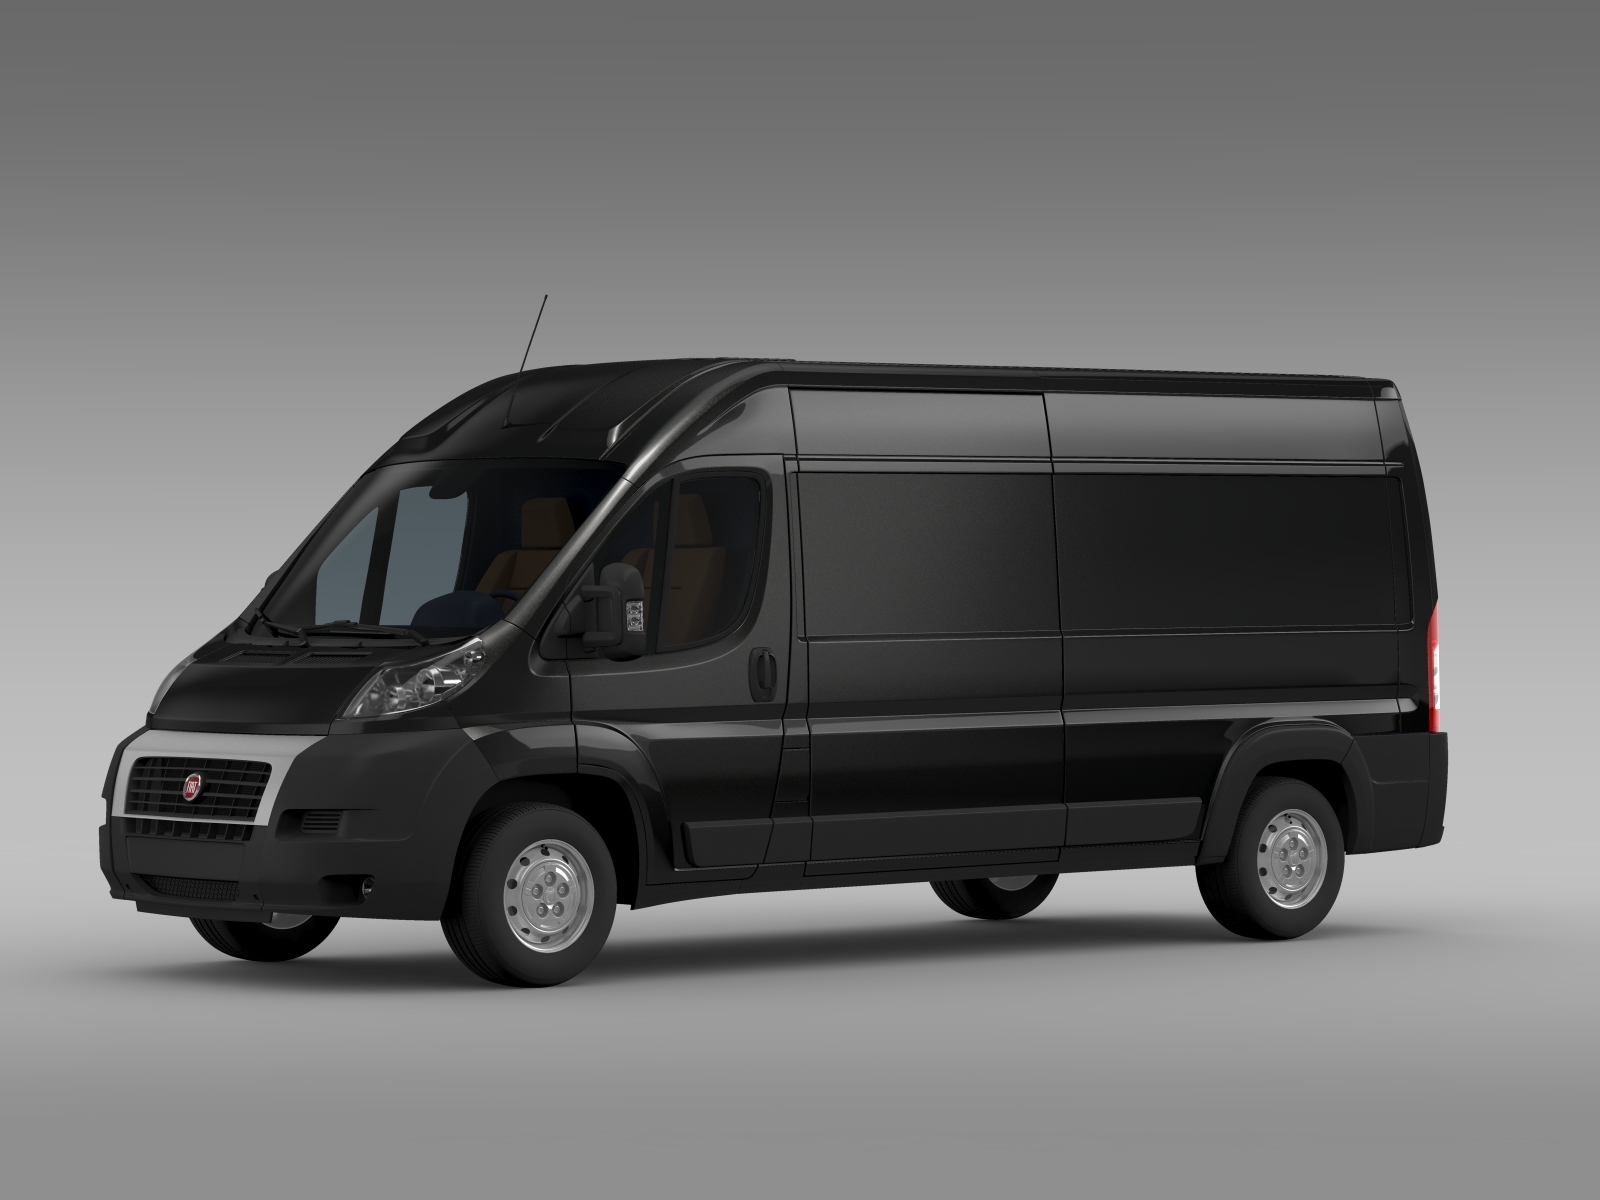 fiat ducato maxi van l3h2 2006 2014 3d model buy fiat. Black Bedroom Furniture Sets. Home Design Ideas